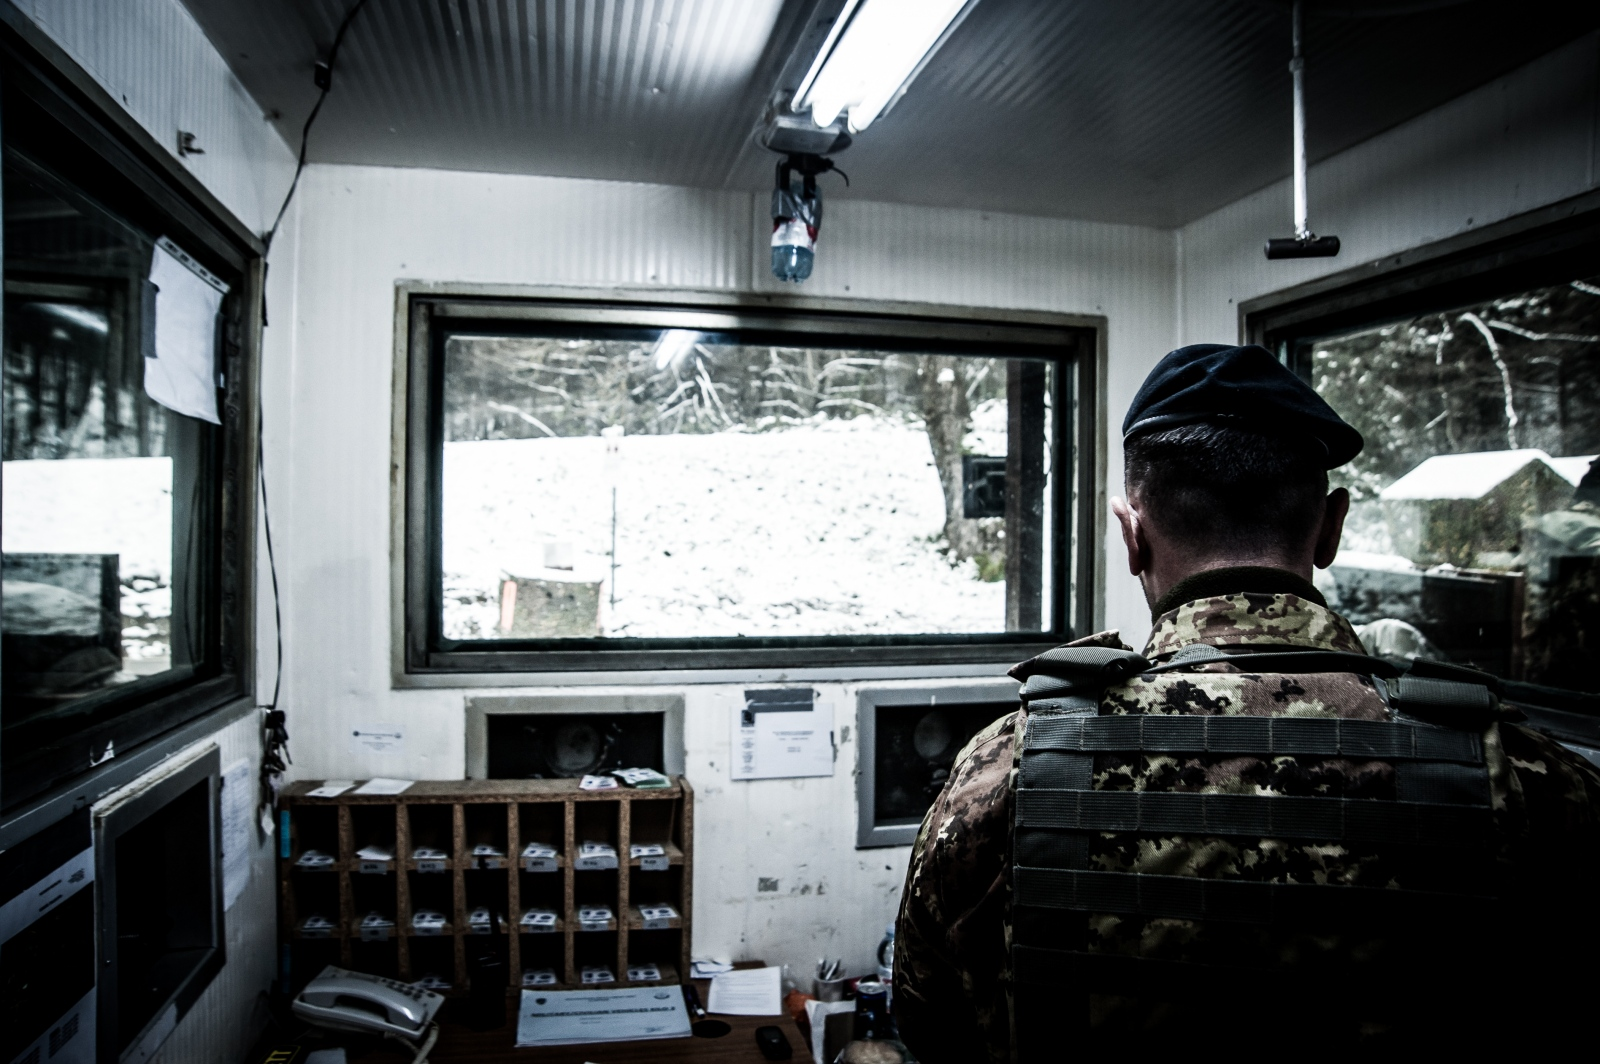 Through the use of surveillance cameras outside and inside the monastery, KFOR soldiers can easily control everything that happens in the area.